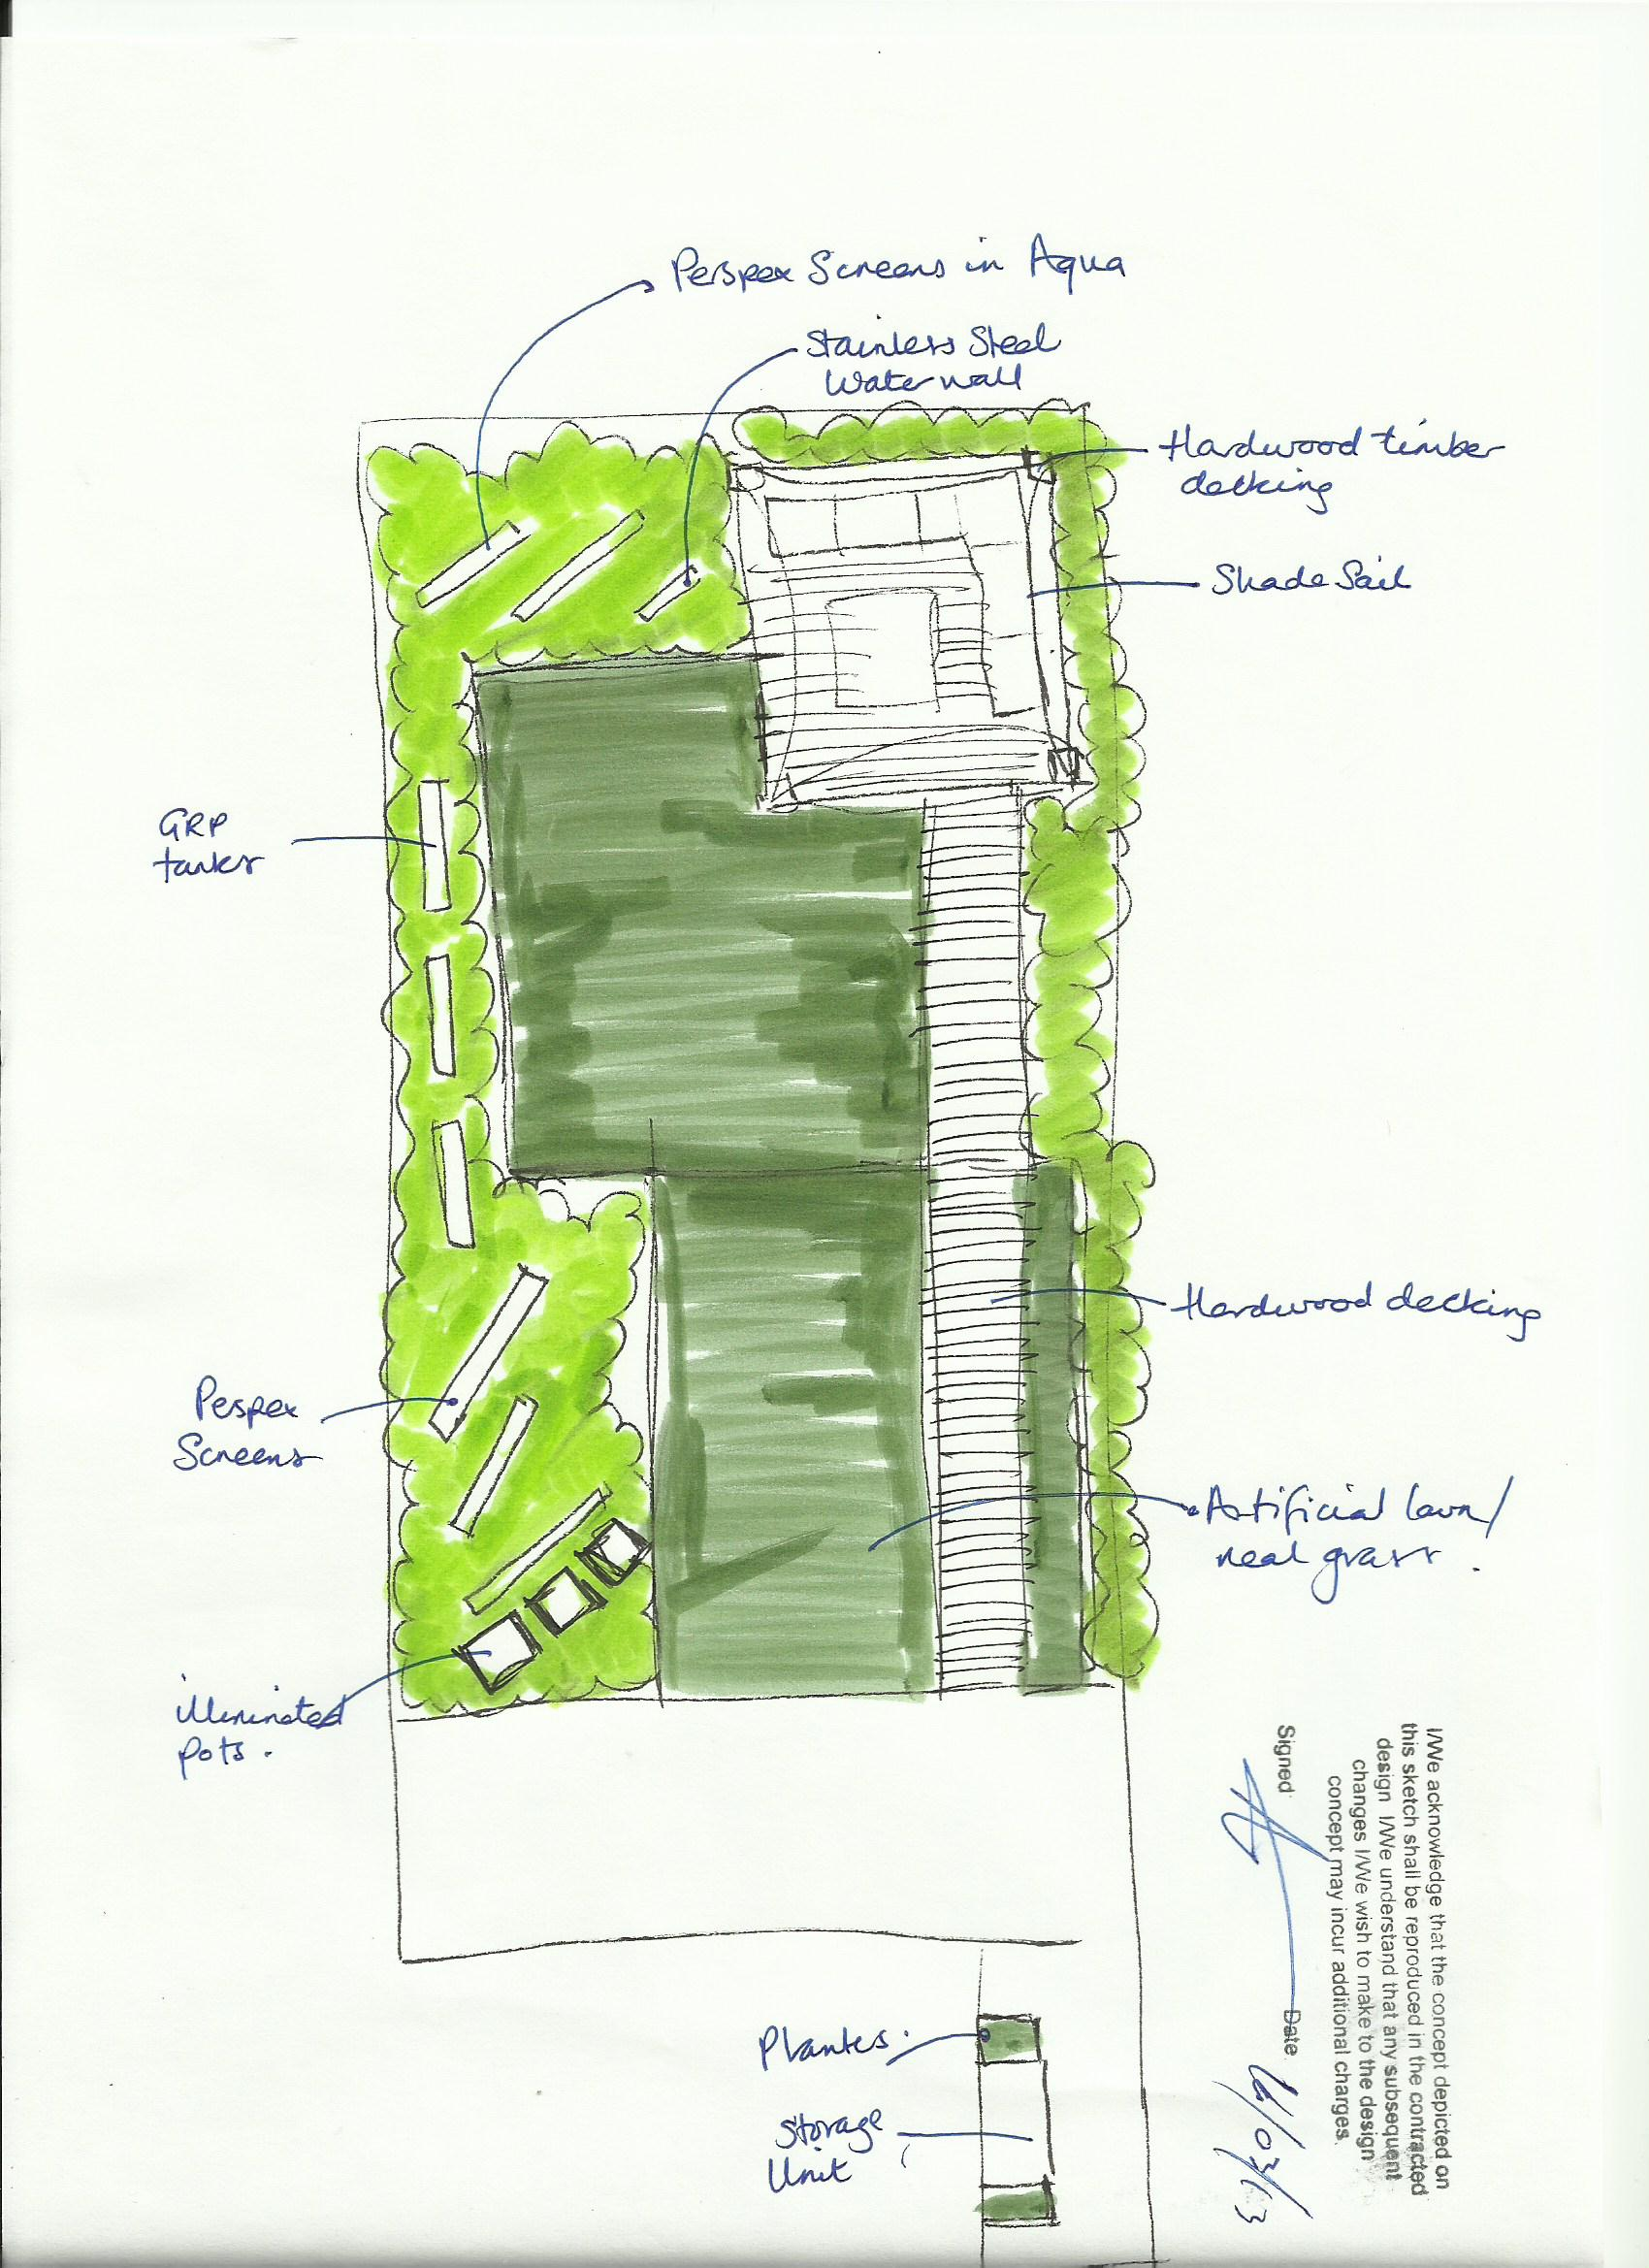 Garden Design Questionnaires For Clients blog - page 32 of 65 - earth designs garden design and build